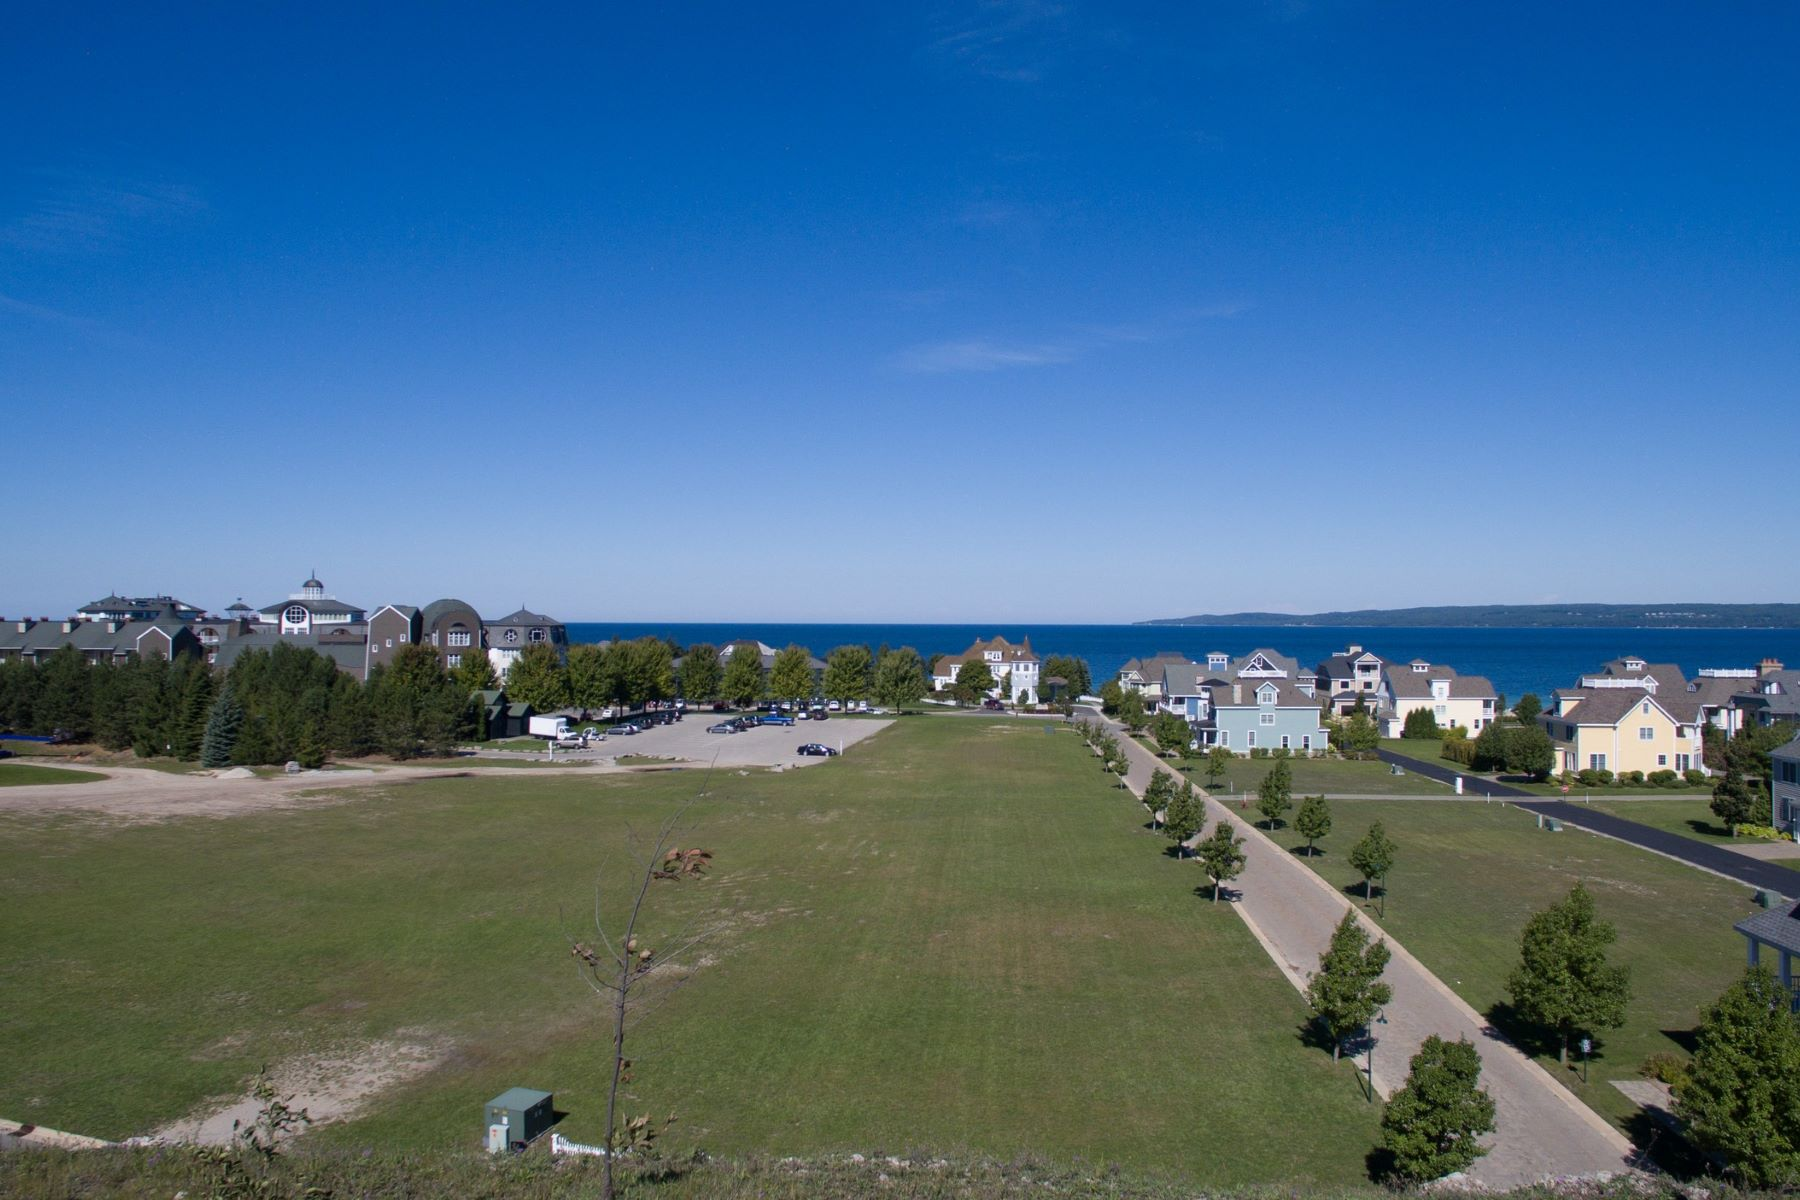 Land for Sale at Unit 8, The Ridge 3752 Cliffs Drive, Unit 8, The Ridge Bay Harbor, Michigan 49770 United States